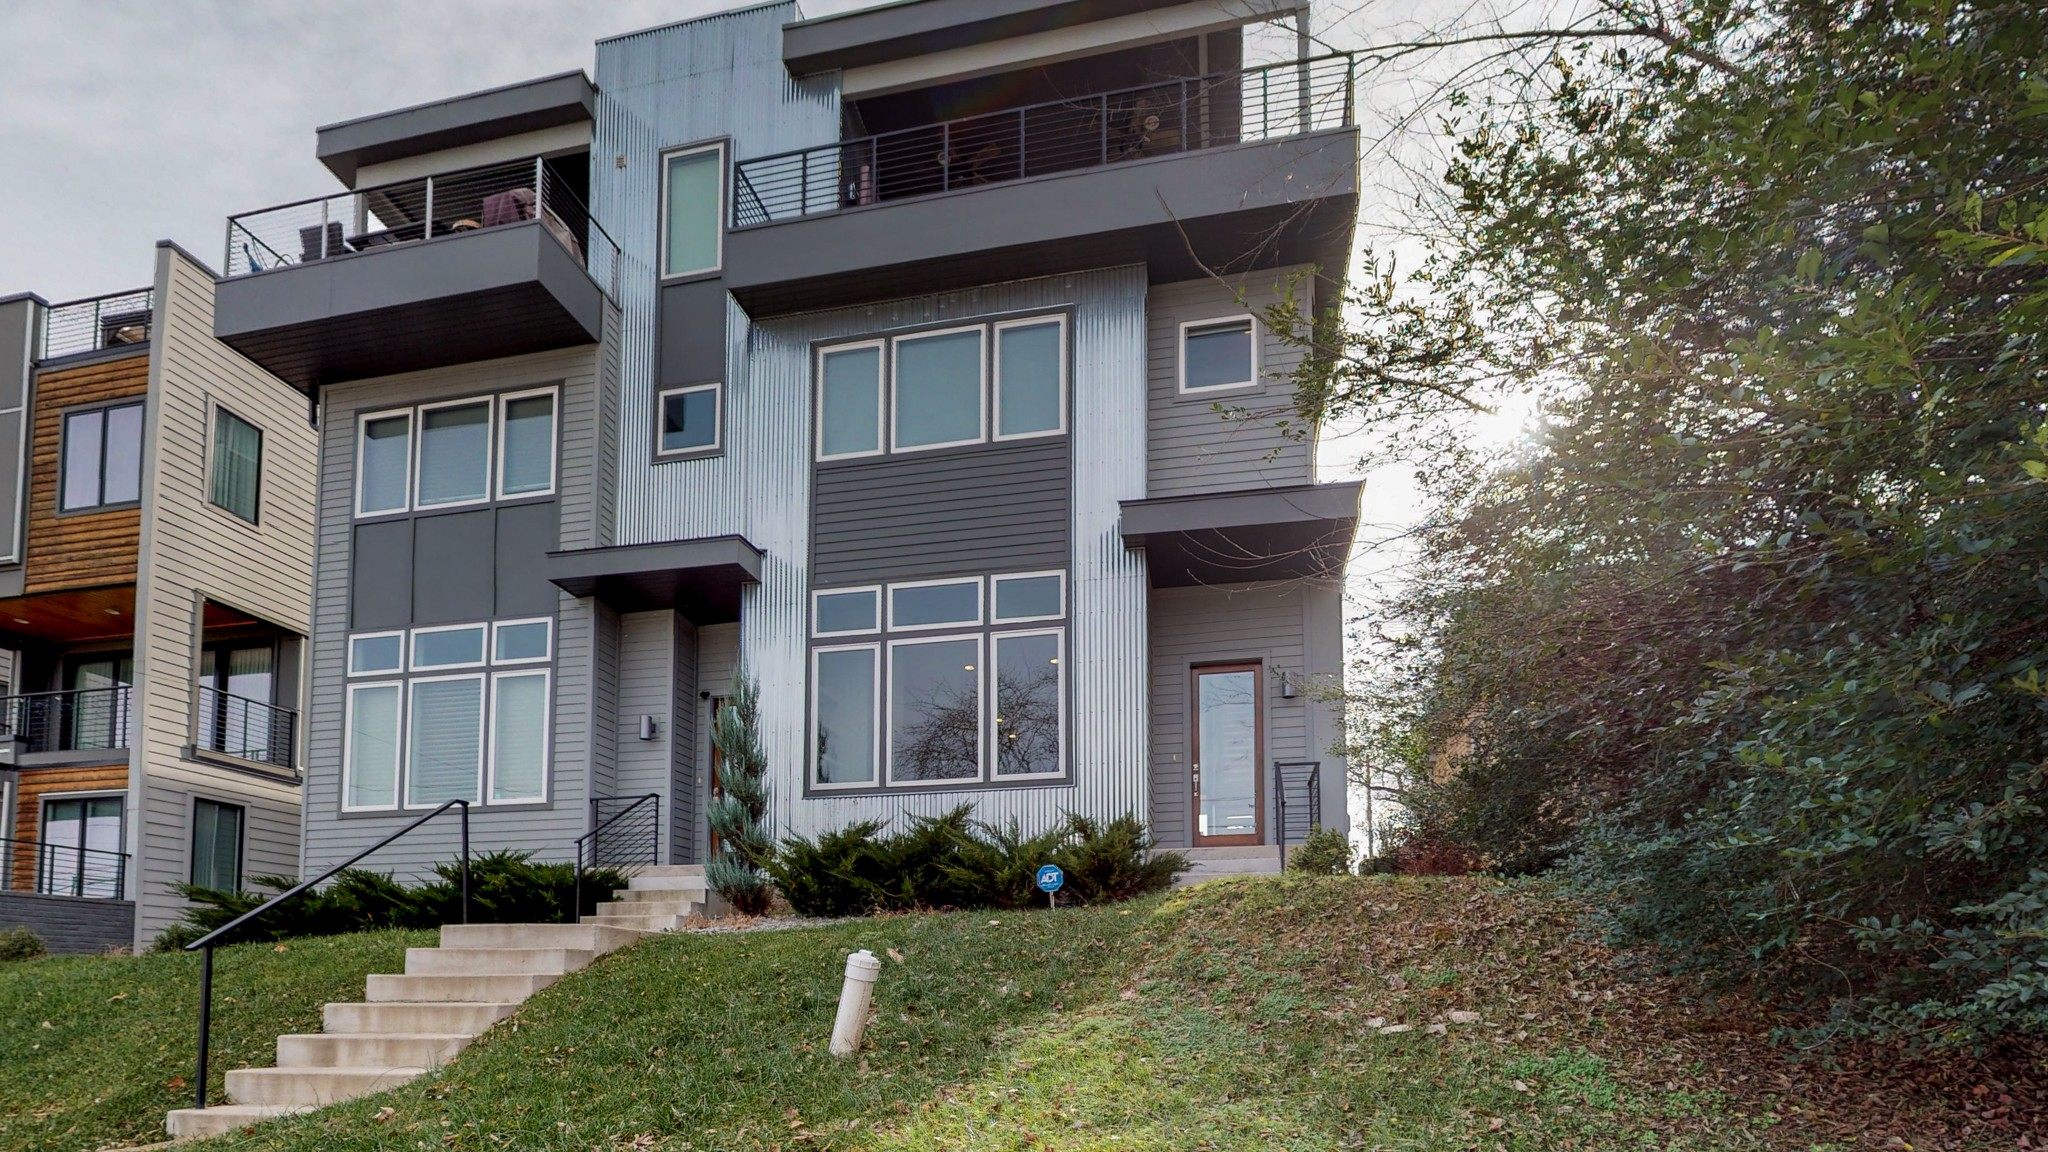 Modern luxury home located minutes away  from downtown Nashville. Stunning view of Nashville's skyline. This home features an open-concept floor-plan, hardwood flooring, walk-in closets, garage style sliding door to access the rooftop deck.